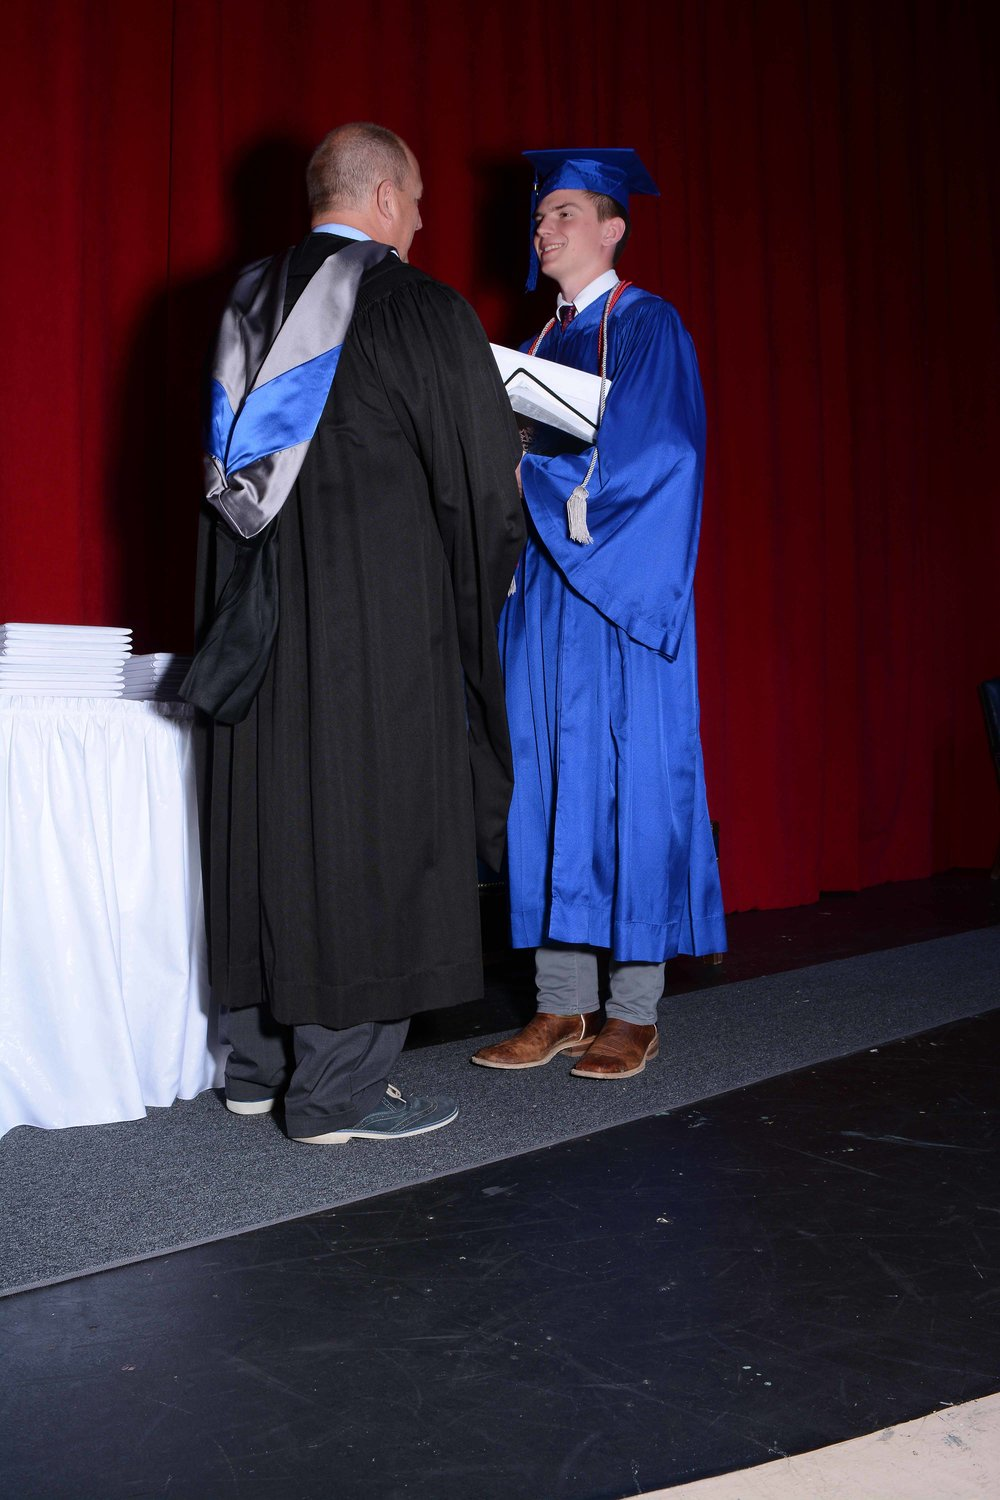 May14 Commencement69.jpg